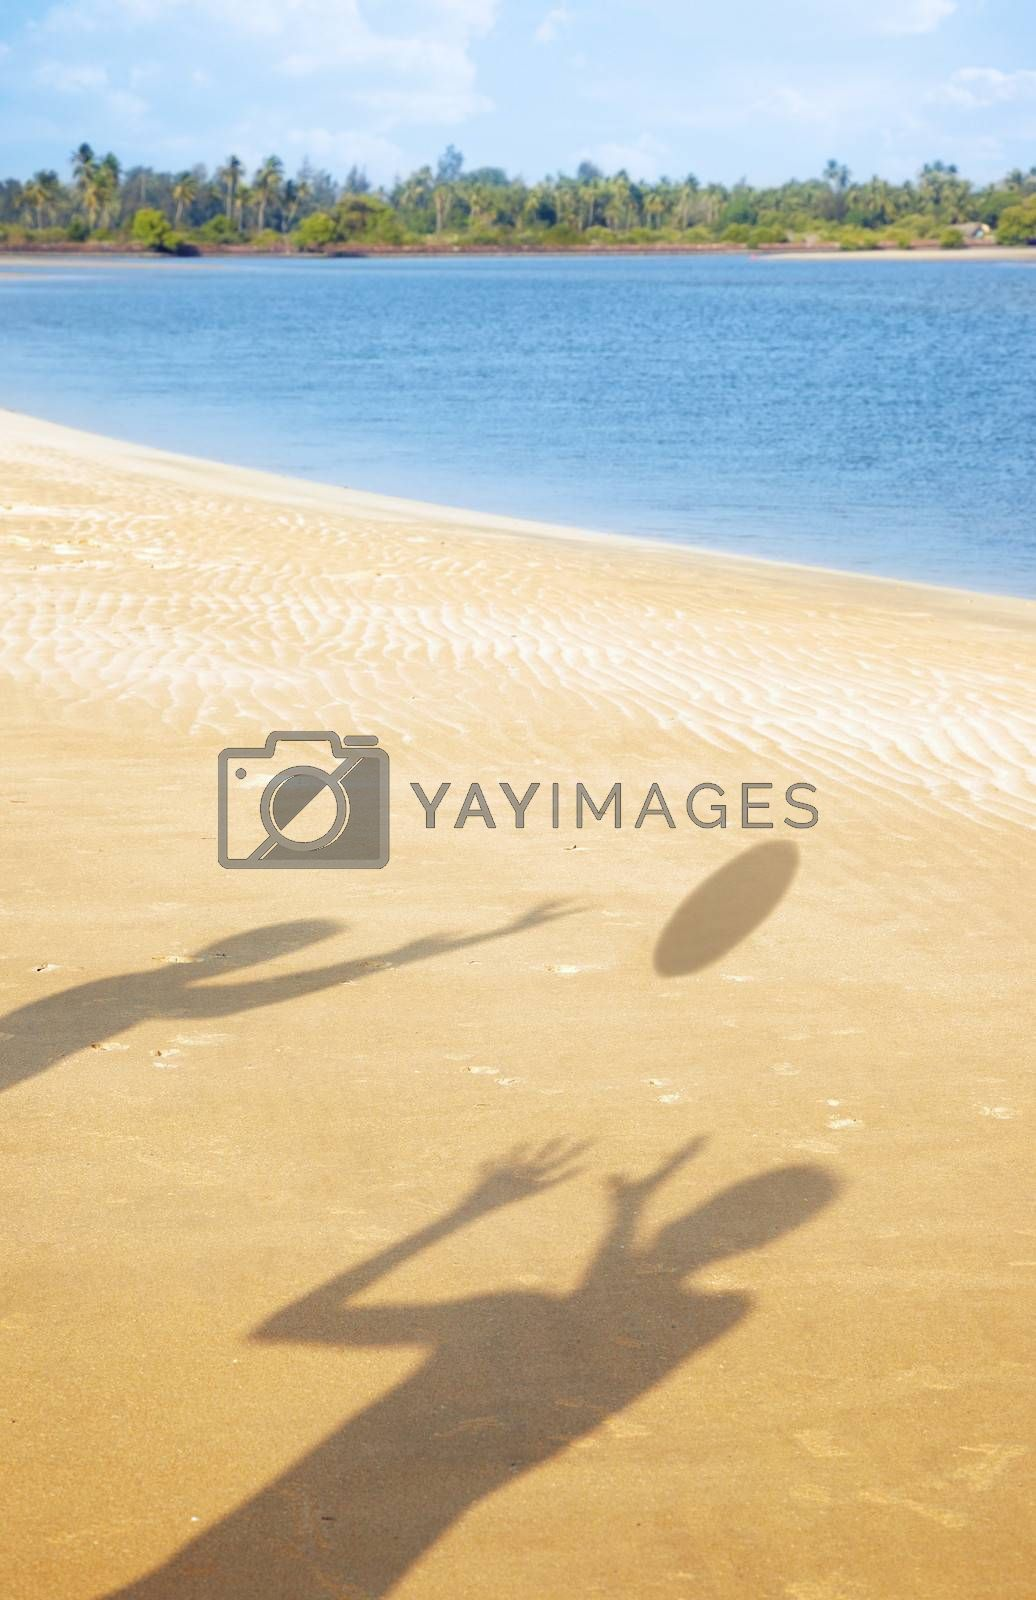 Shadows of two people playing with ball at the summer beach. Vertical photo with vibrant colors